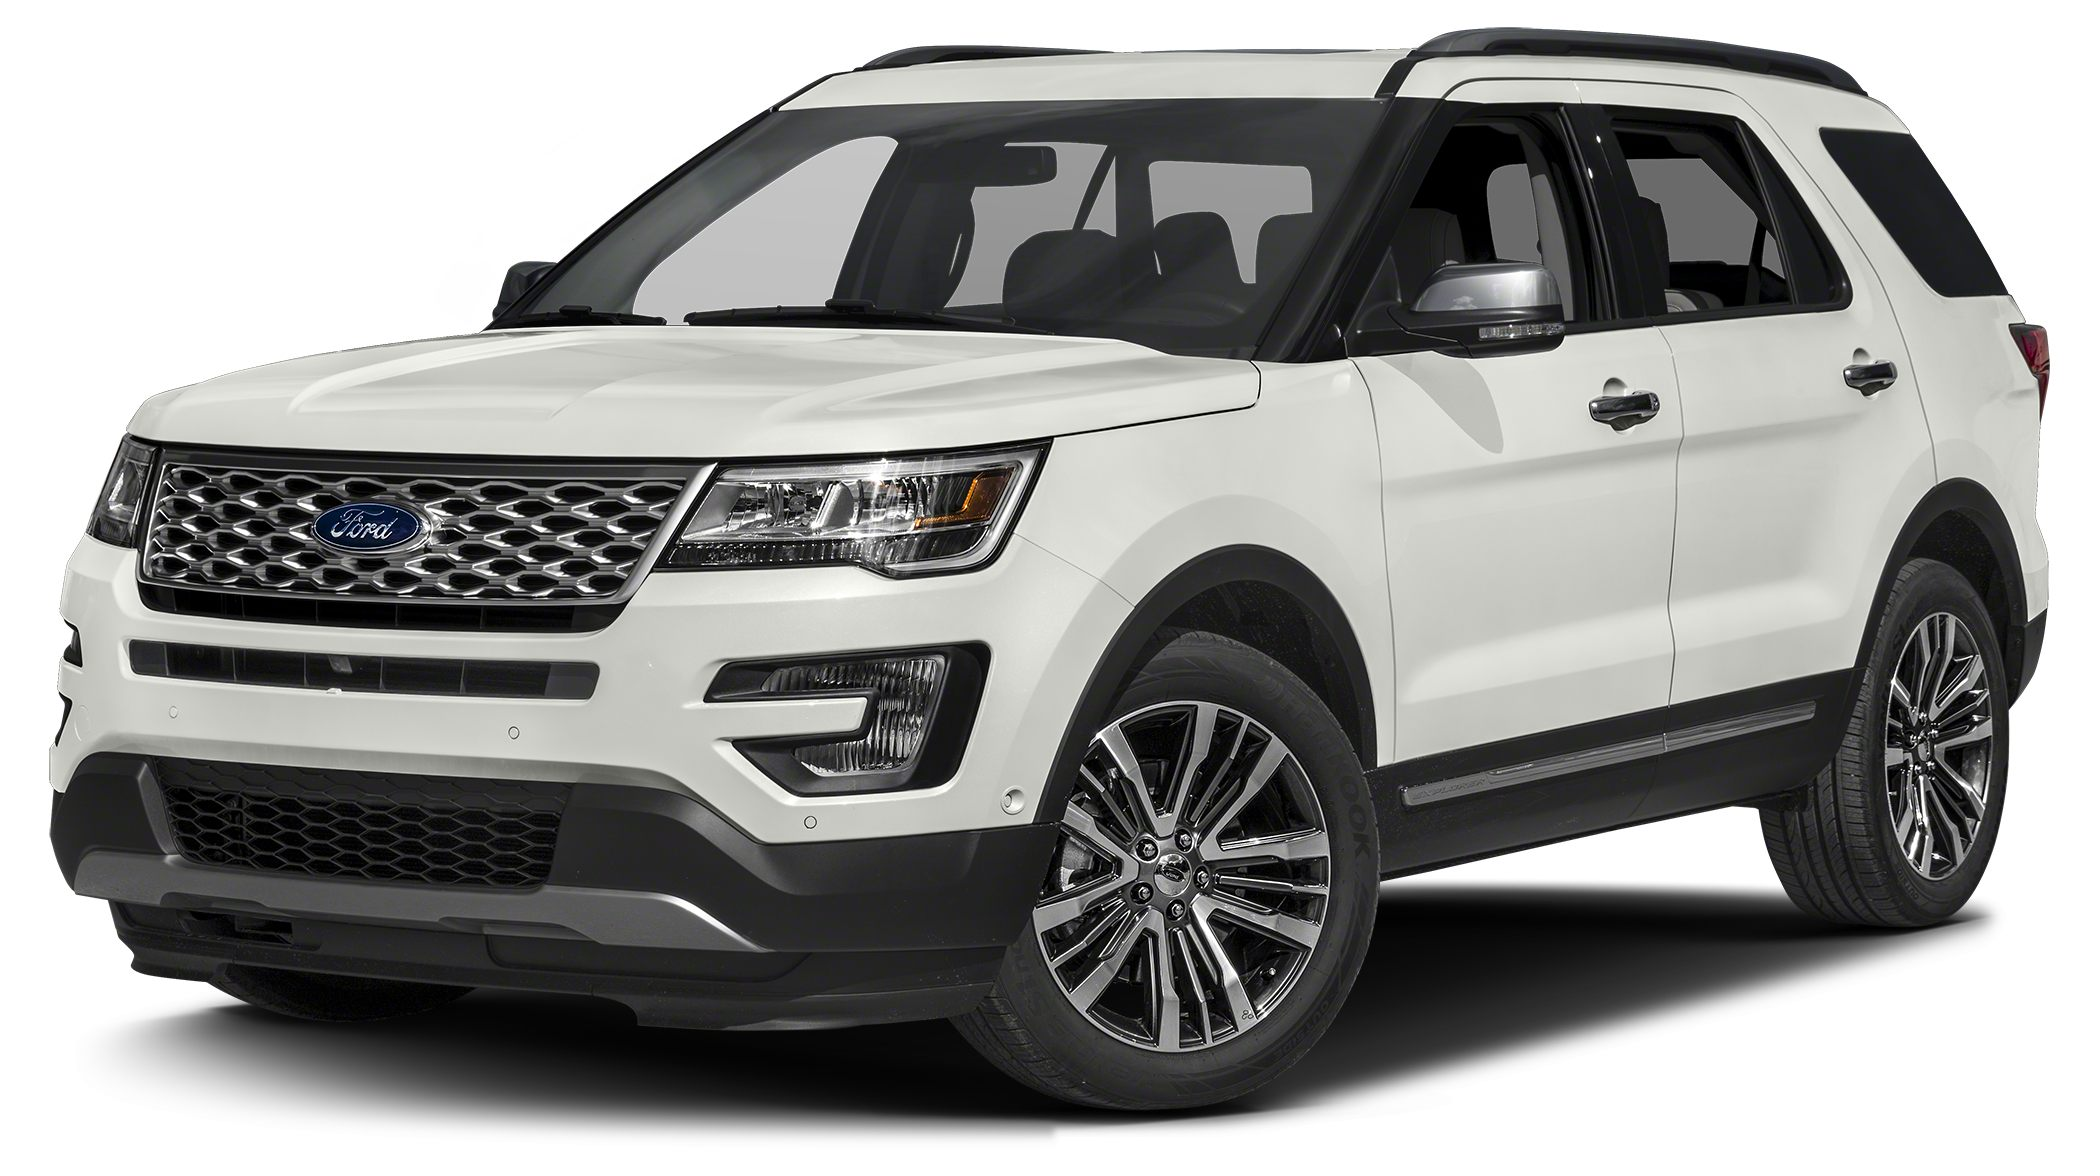 2017 Ford Explorer Platinum 2017 Ford Explorer Platinum Price includes 500 - Ford Credit Retail